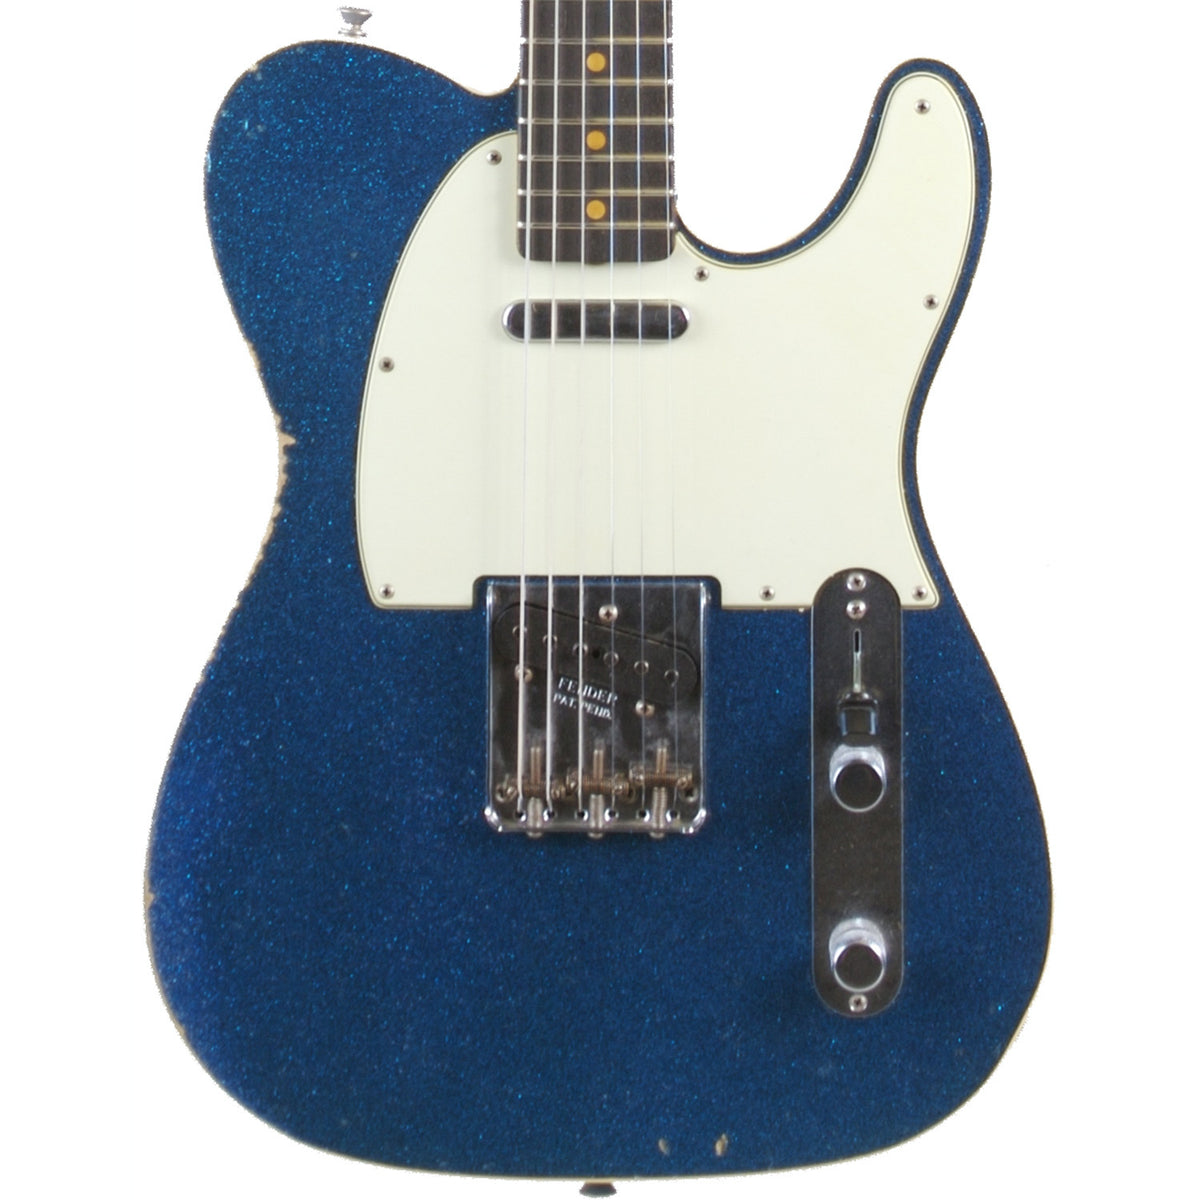 Fender Custom Shop '60 Telecaster Relic Blue Sparkle - Garrett Park Guitars  - 2